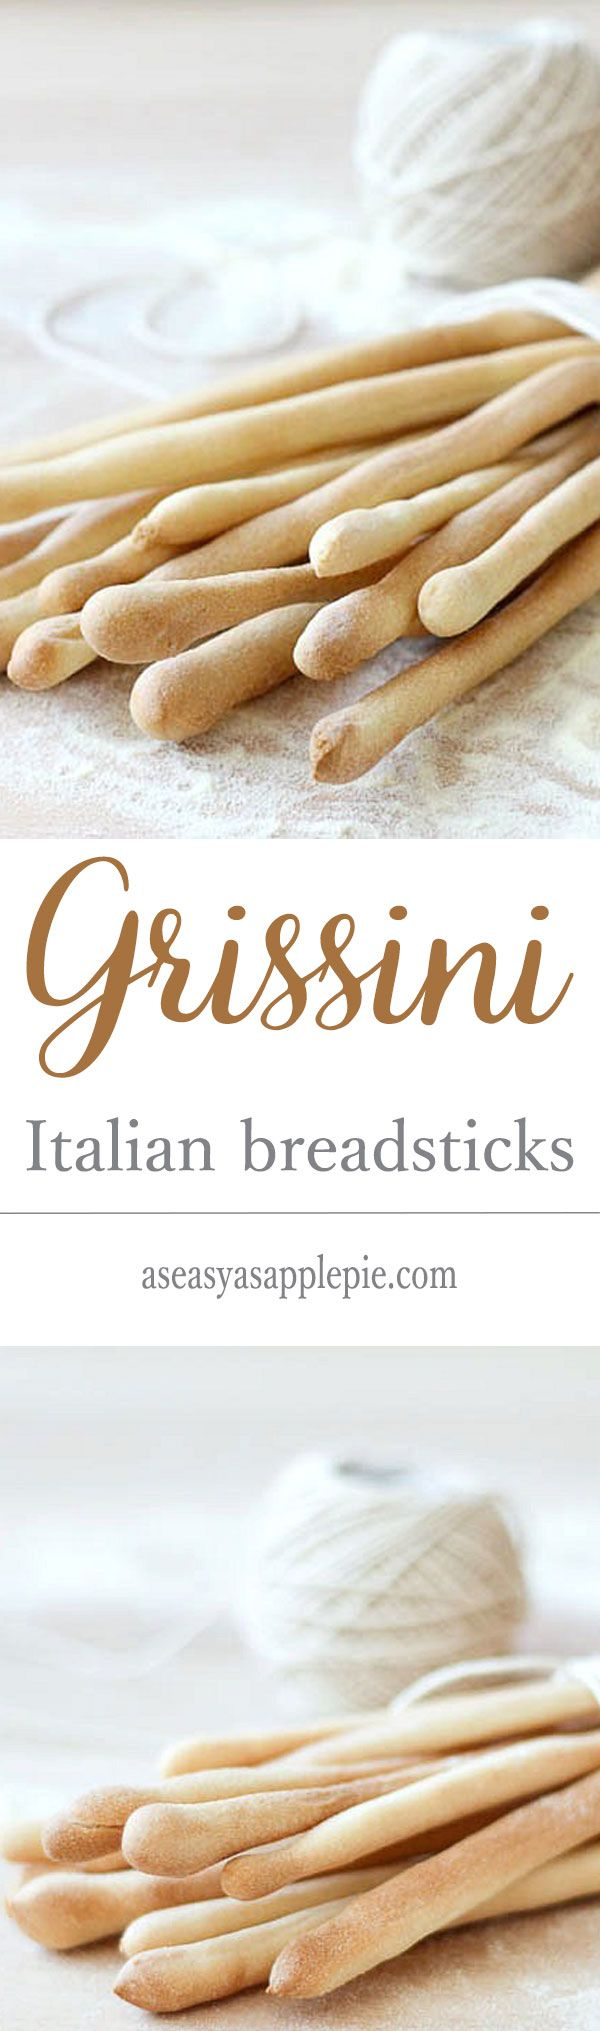 Grissini are crunchy Italian breadsticks with a rustic, uneven appearance